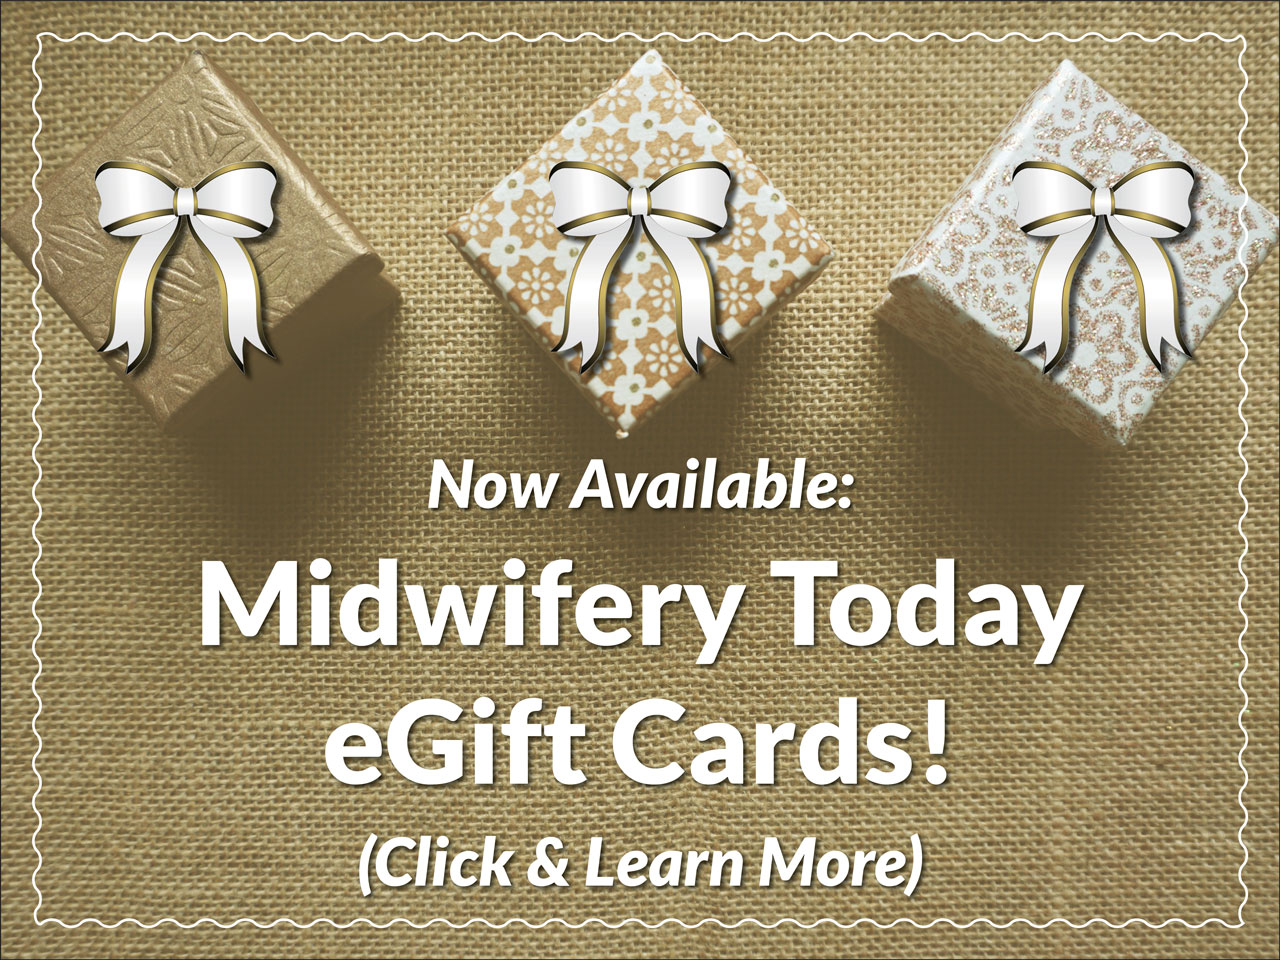 Give Midwifery Today eGift Cards